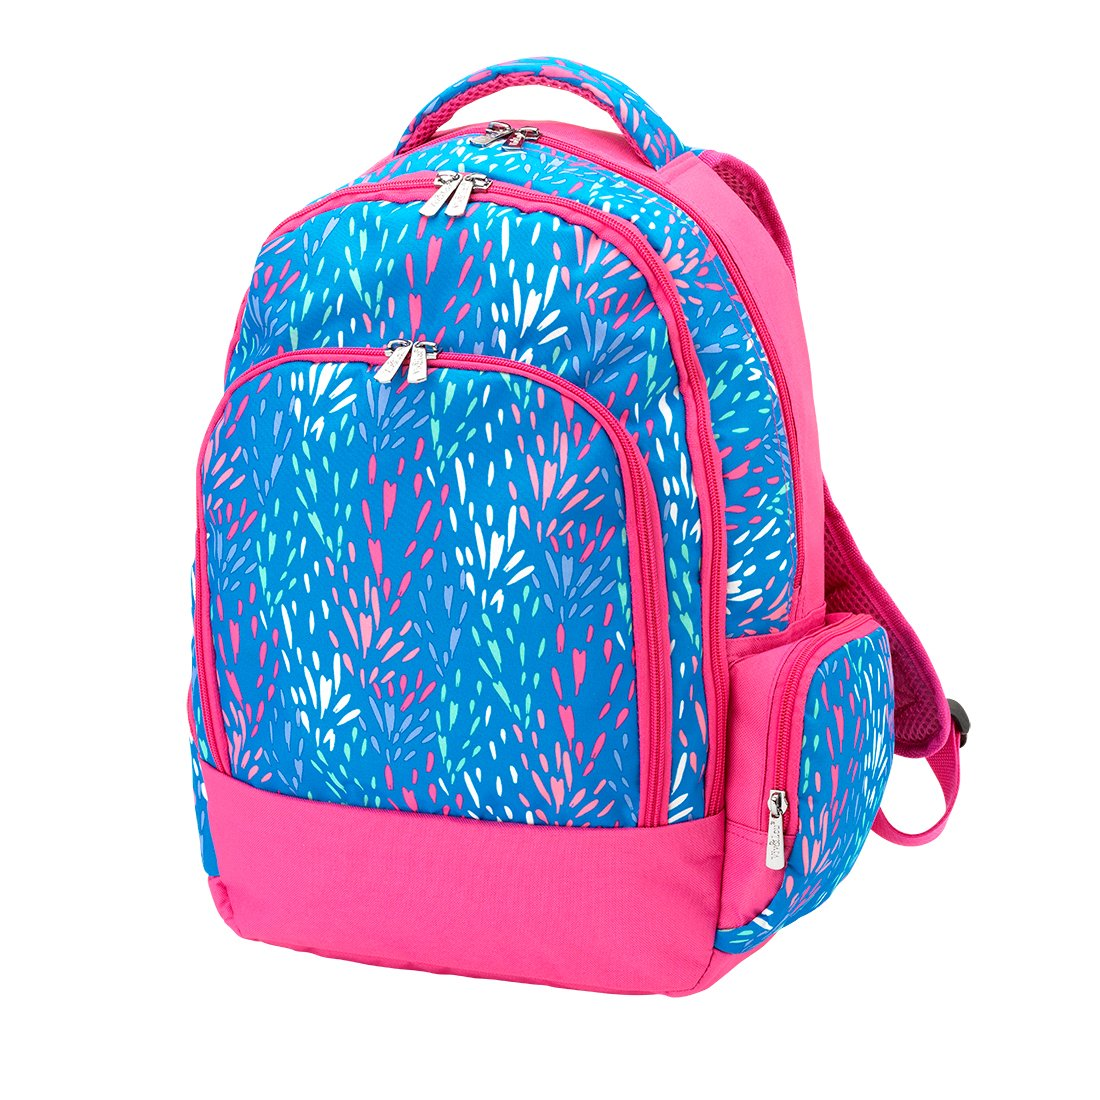 WB Sparktacular Backpack by WB